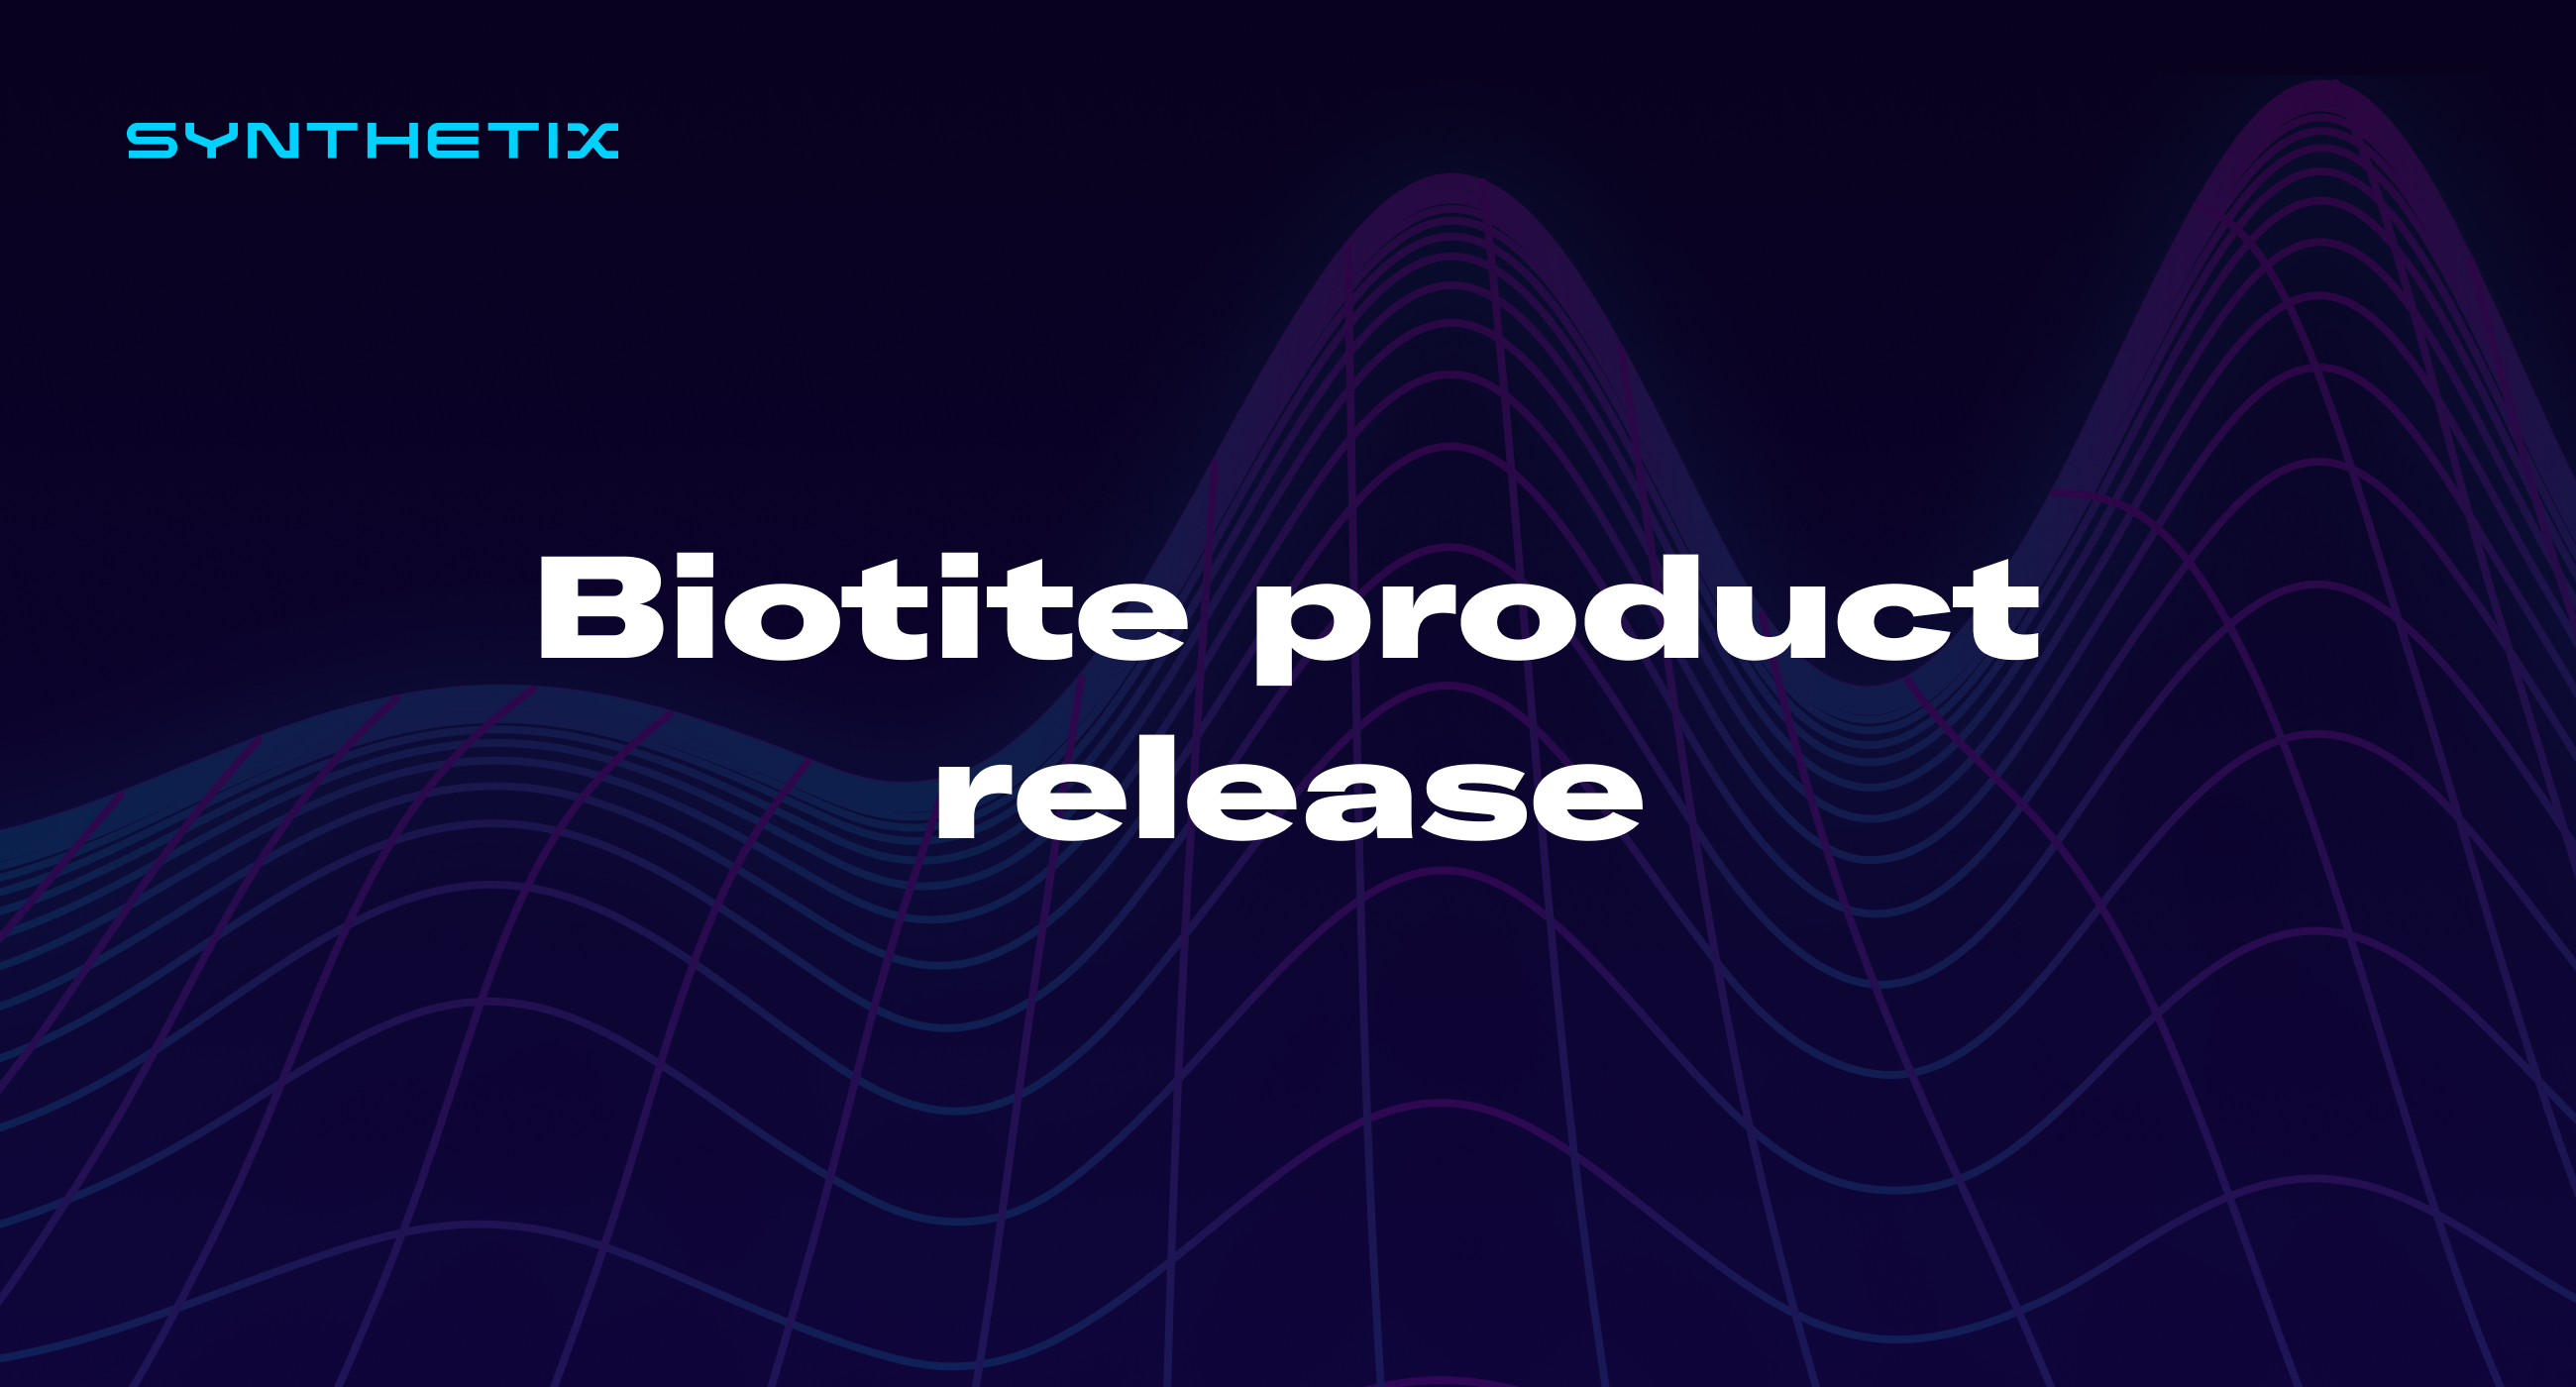 Biotite product release